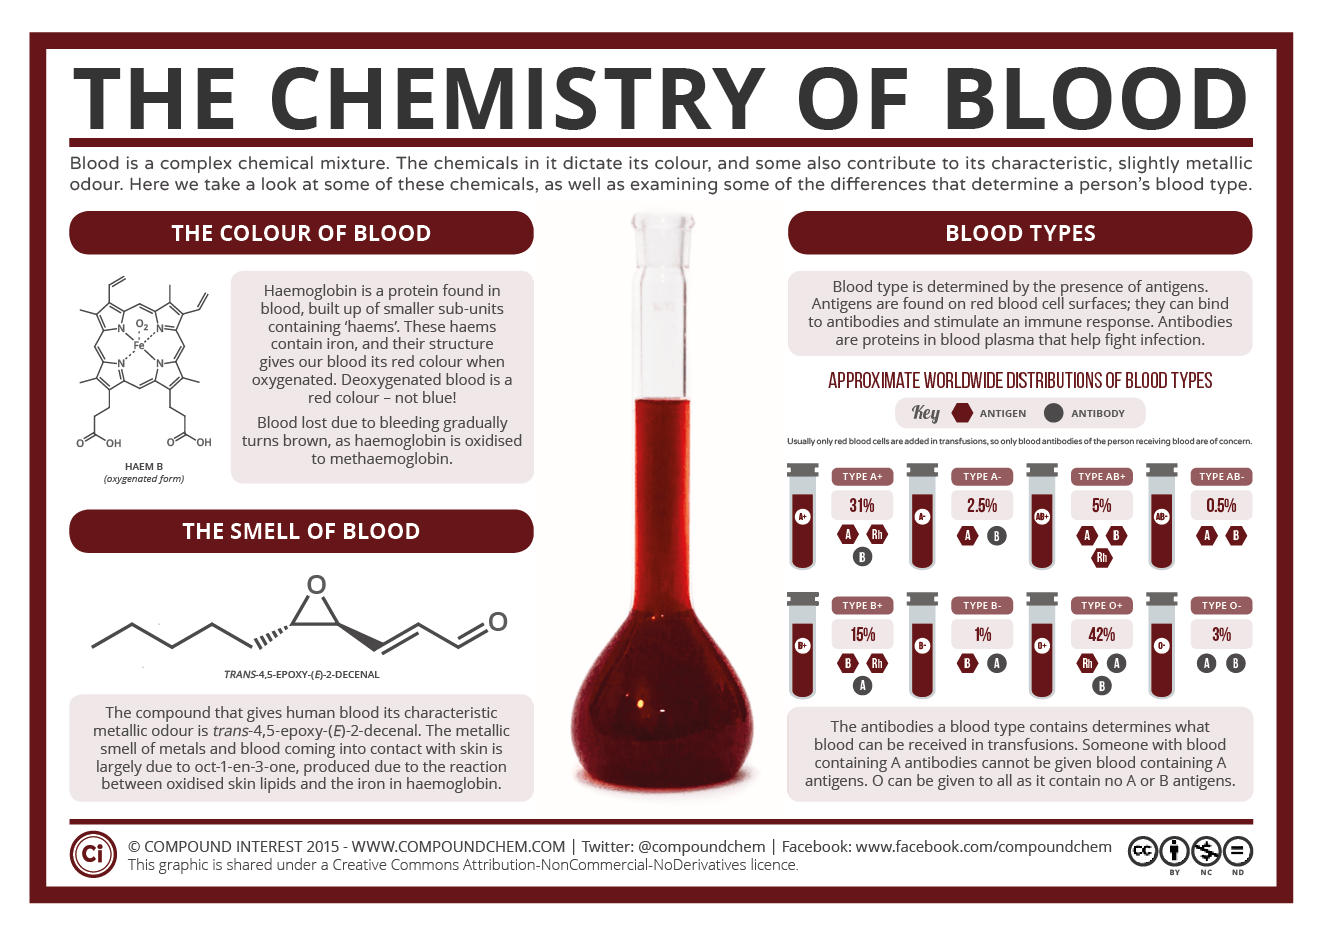 the chemistry of blood colours For serum determinations in chemistry, serology and immunohematology (blood banking) departments : immunohematology (blood bank)- patient blood is tested to determine abo/d type as well as to detect the presence of unexpected antibodies which may cause reactions with donor blood.